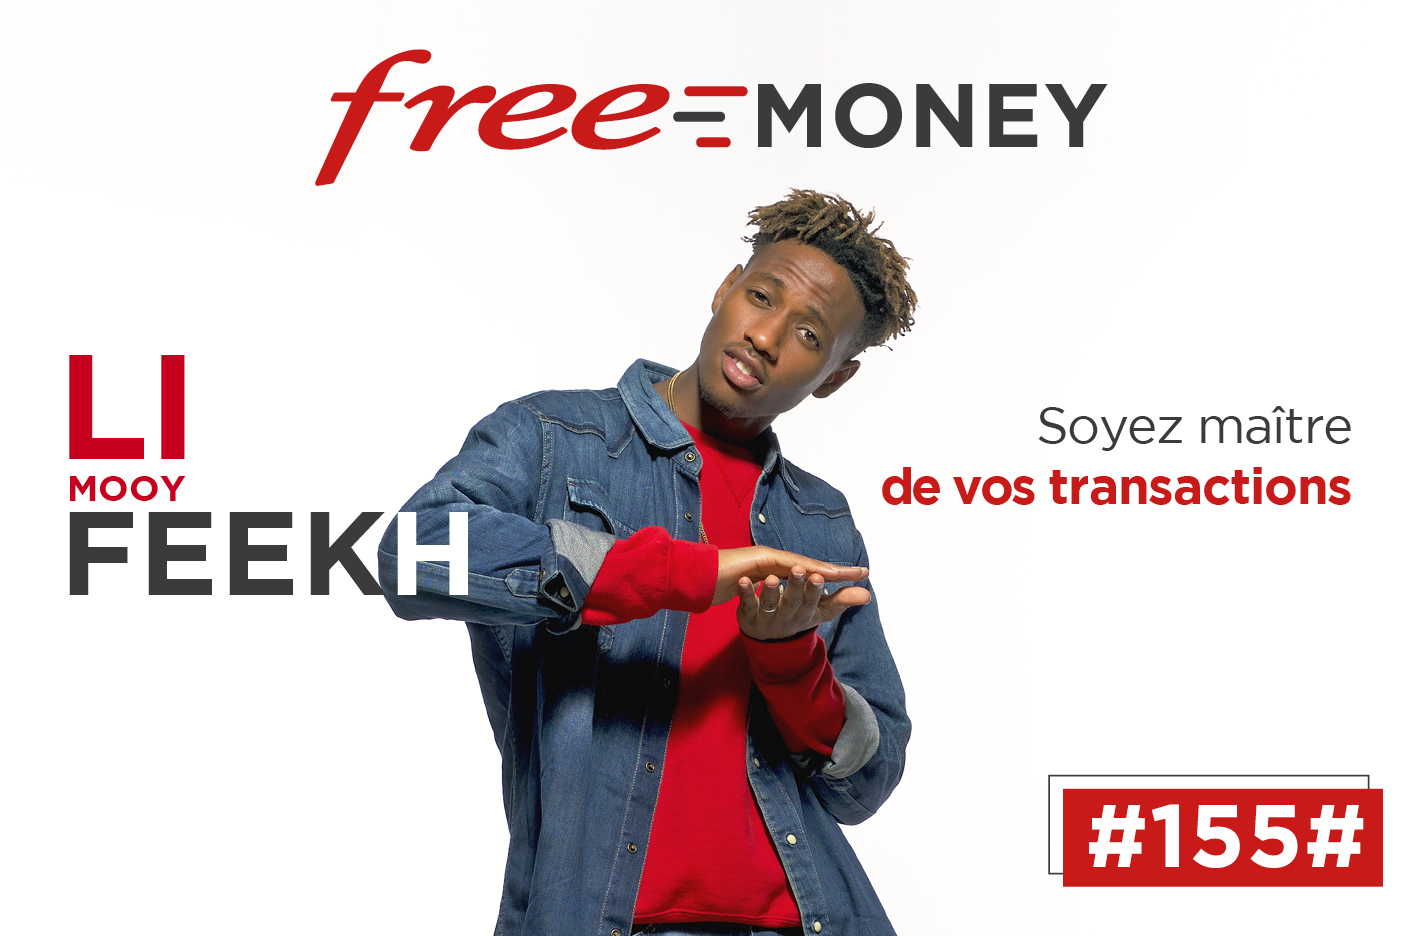 Offres free money Image